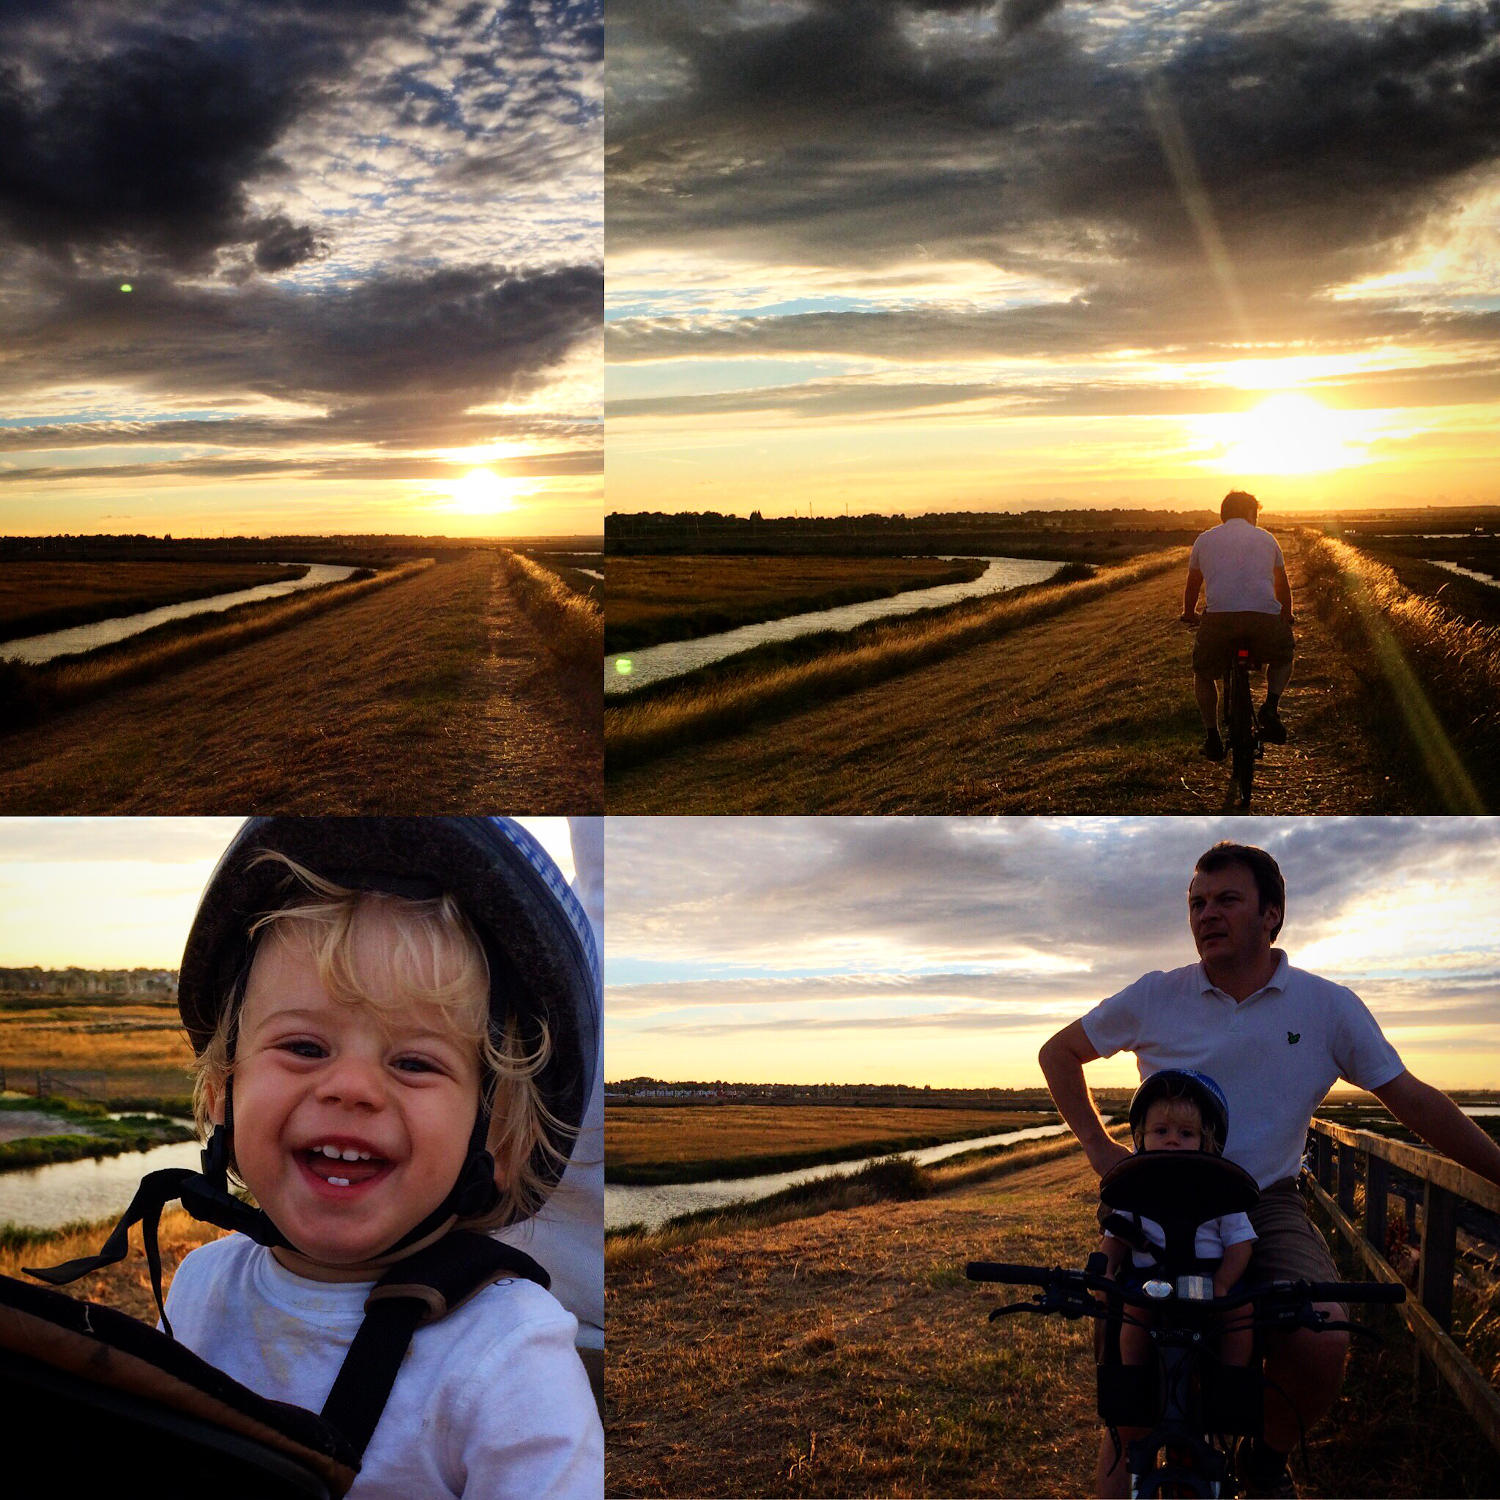 Collage of sunset photos with a bike